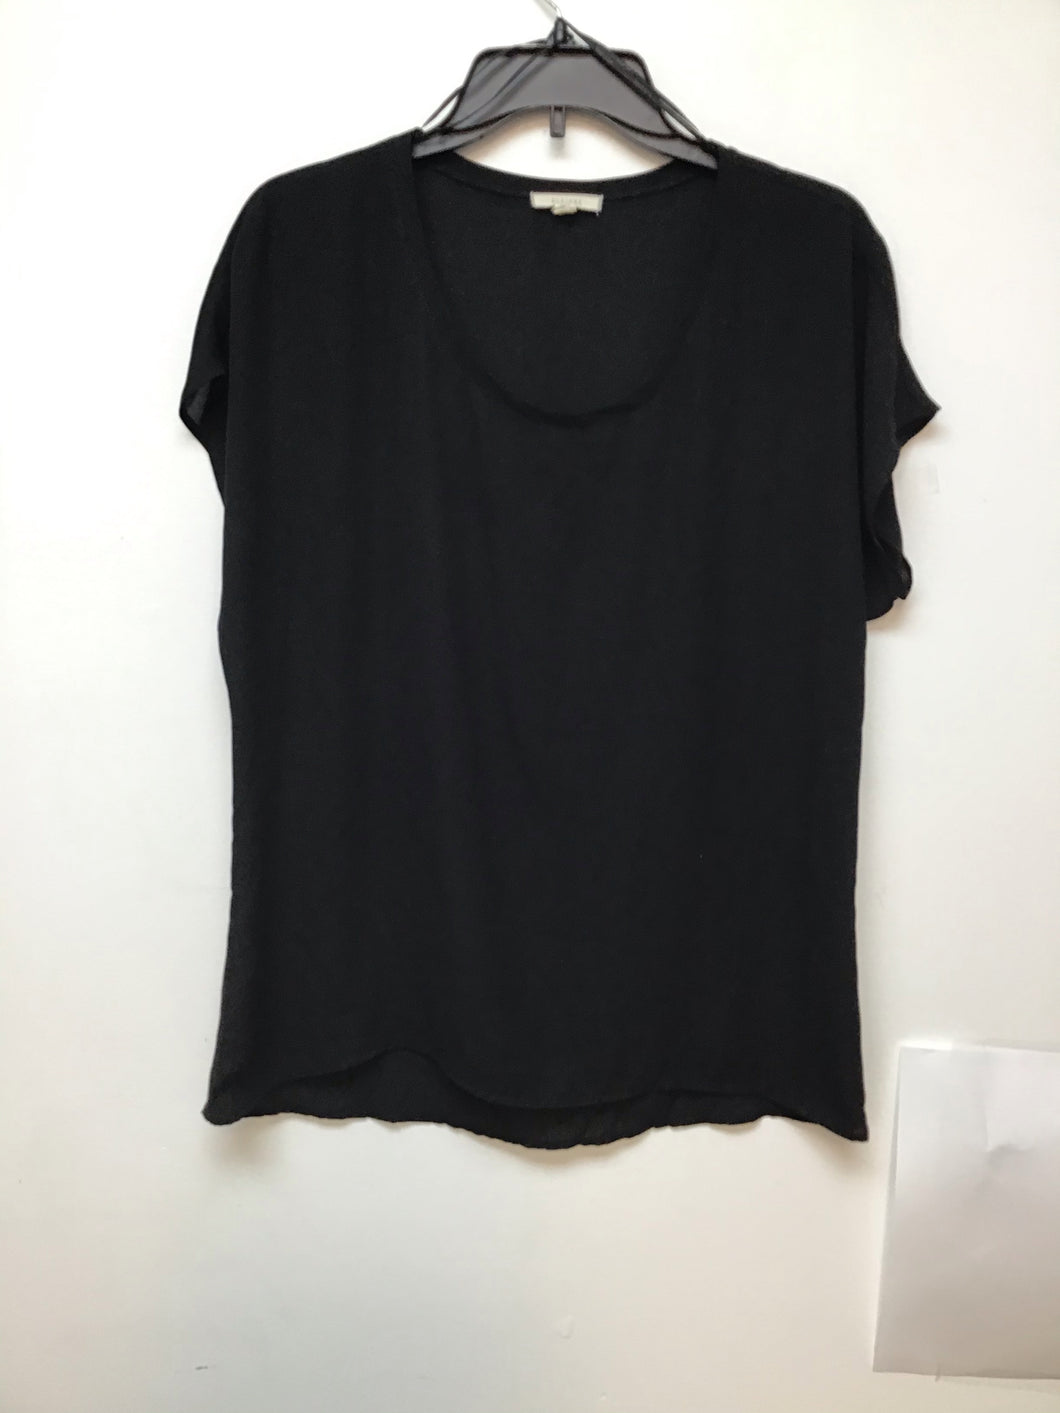 Dleione Black blouse size small